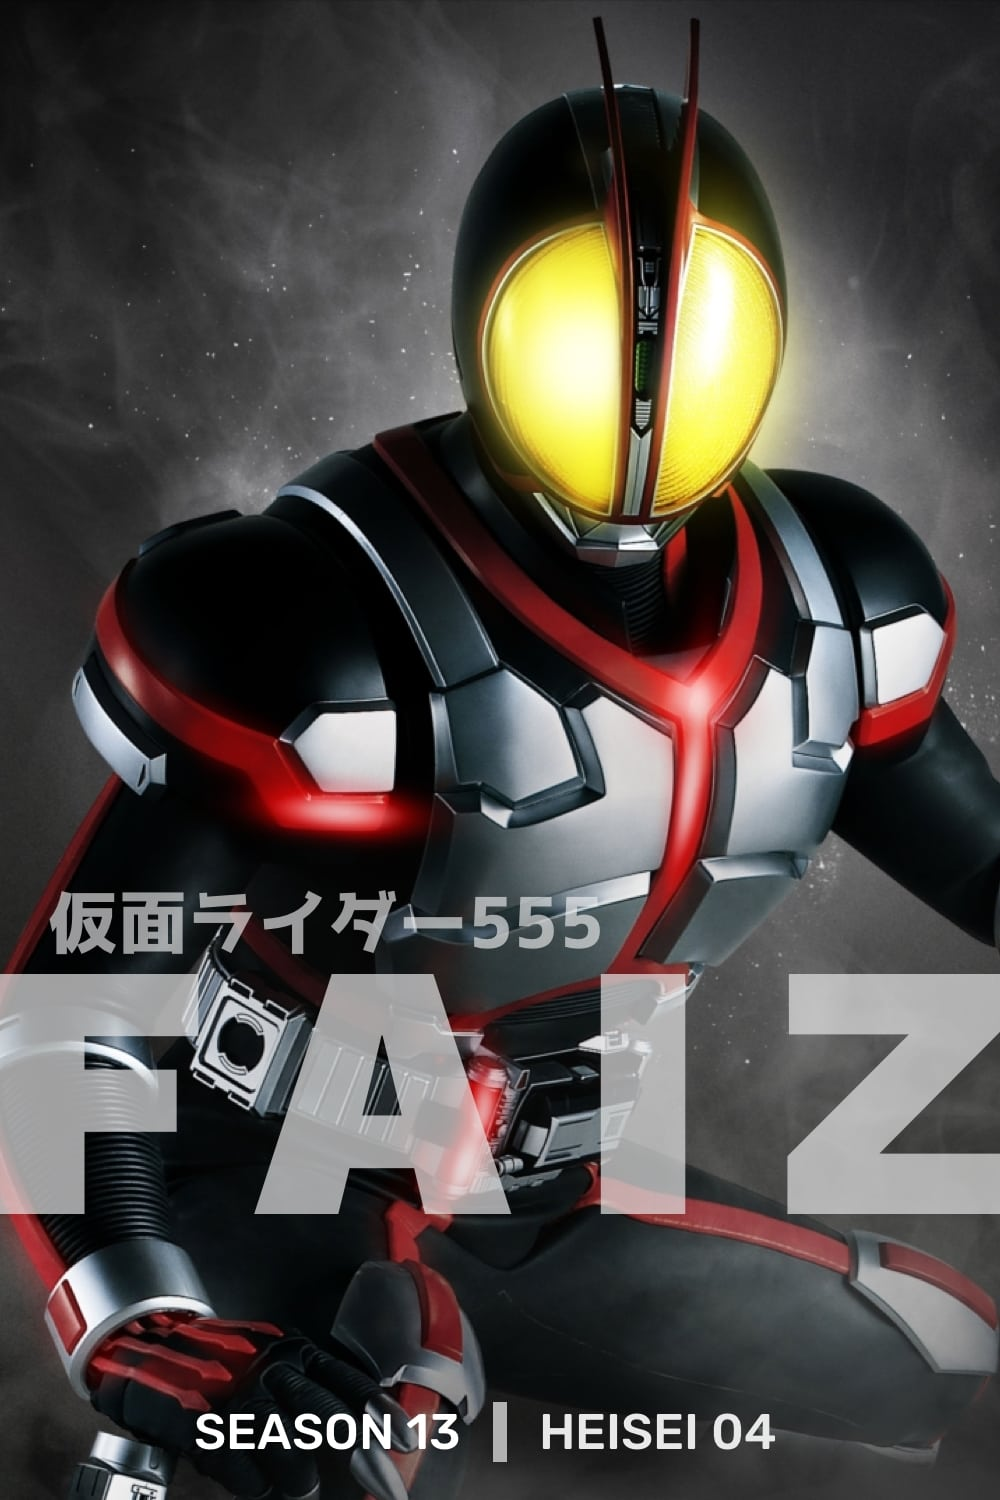 Kamen Rider - Season 21 Episode 31 : Repaying a Favor, Scheme, Purple Medals Season 13